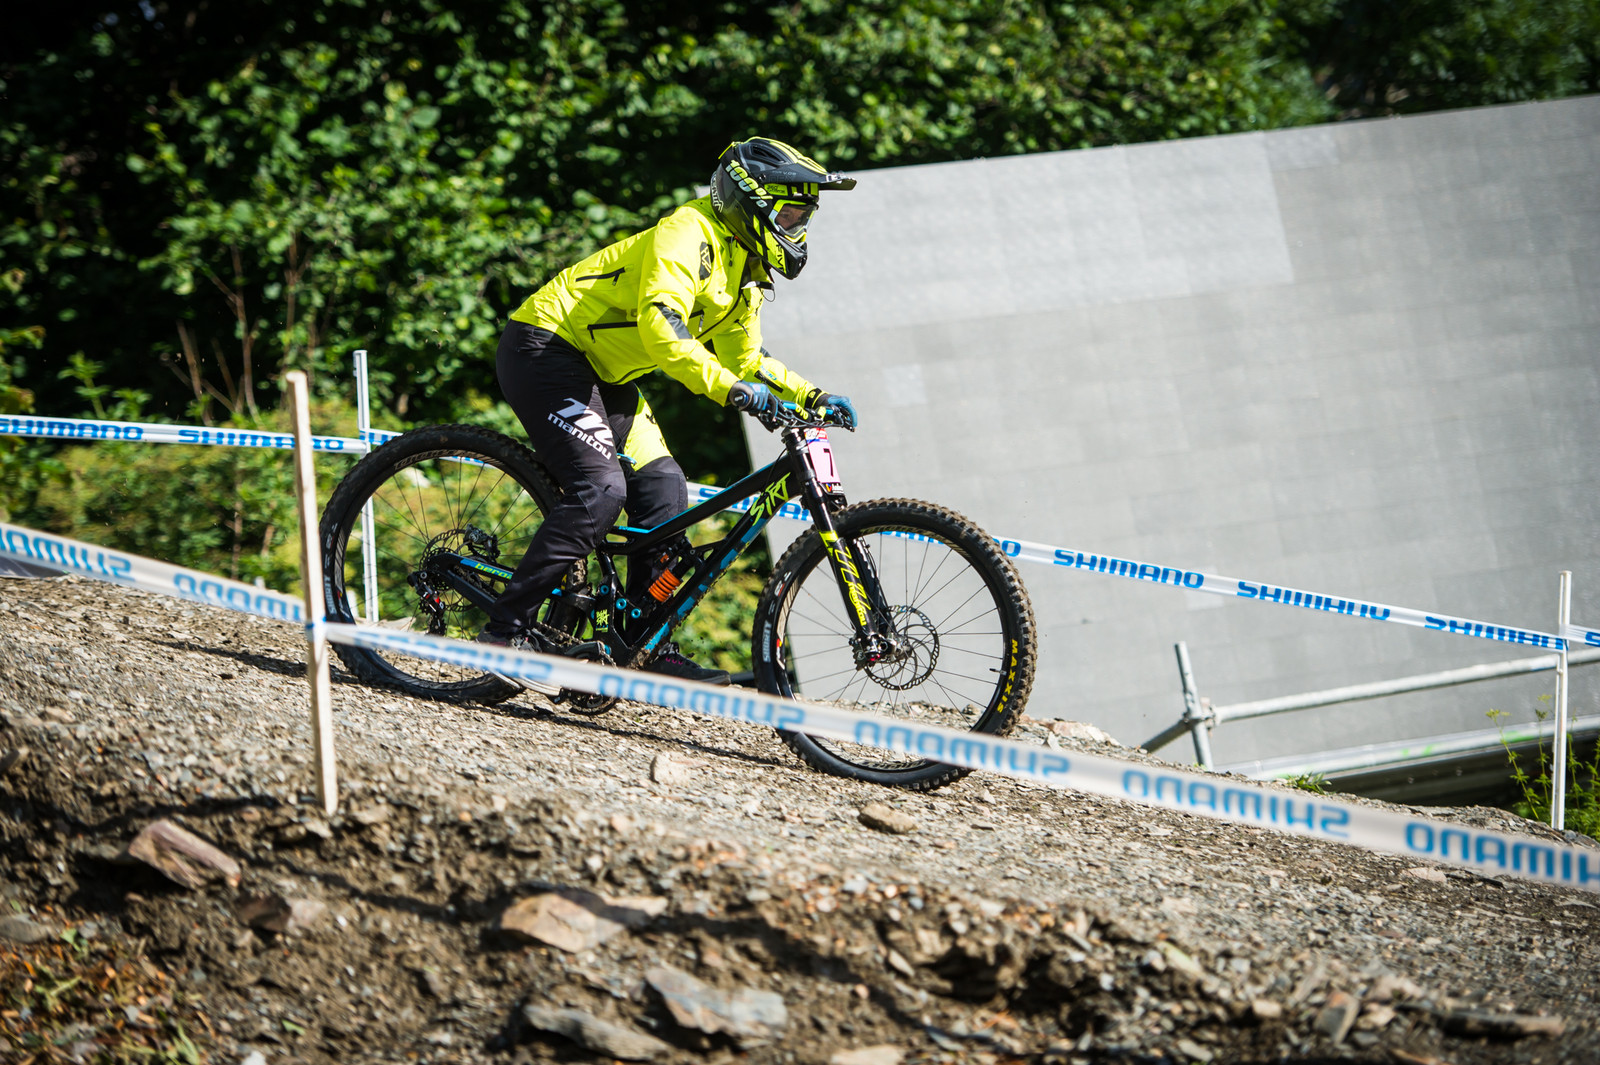 Bergamont G-Out - G-Out Project: Andorra World Cup 2017 - Mountain Biking Pictures - Vital MTB